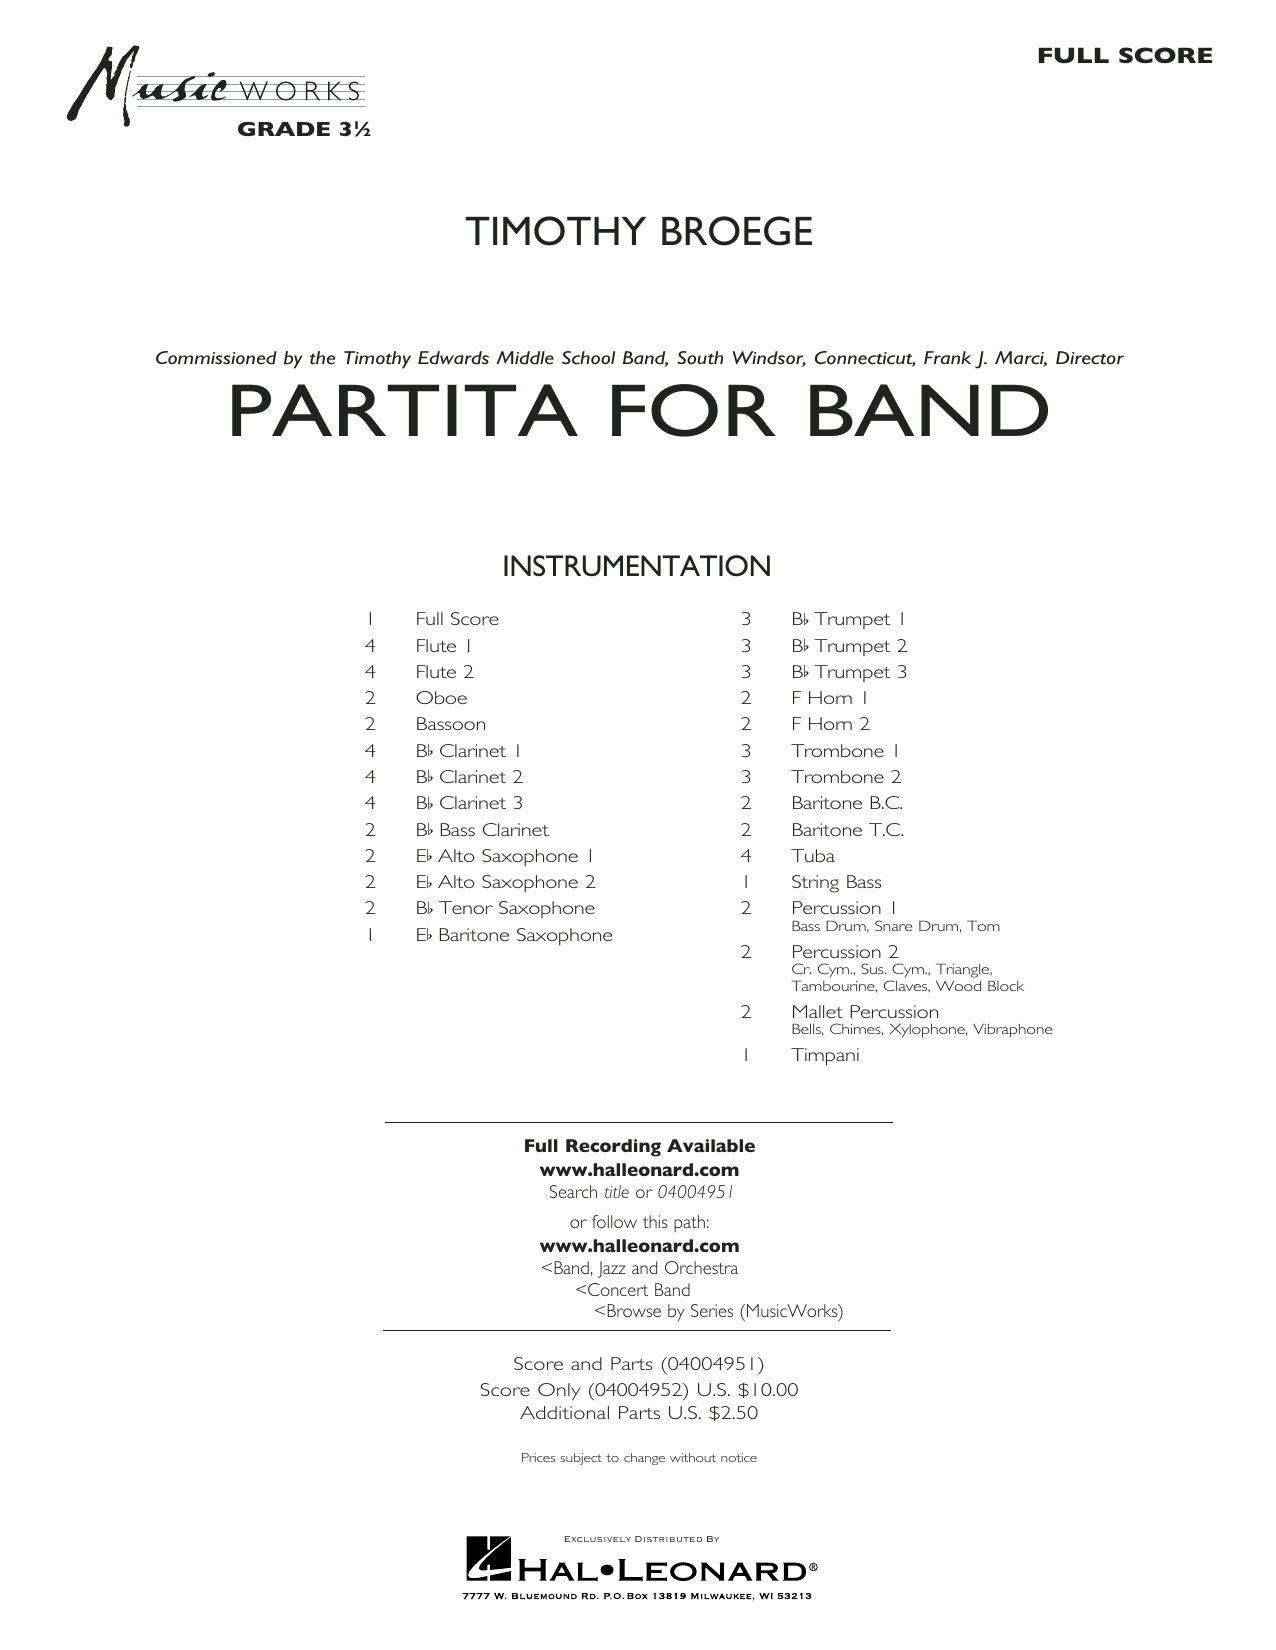 Partita for Band - Conductor Score (Full Score) Sheet Music